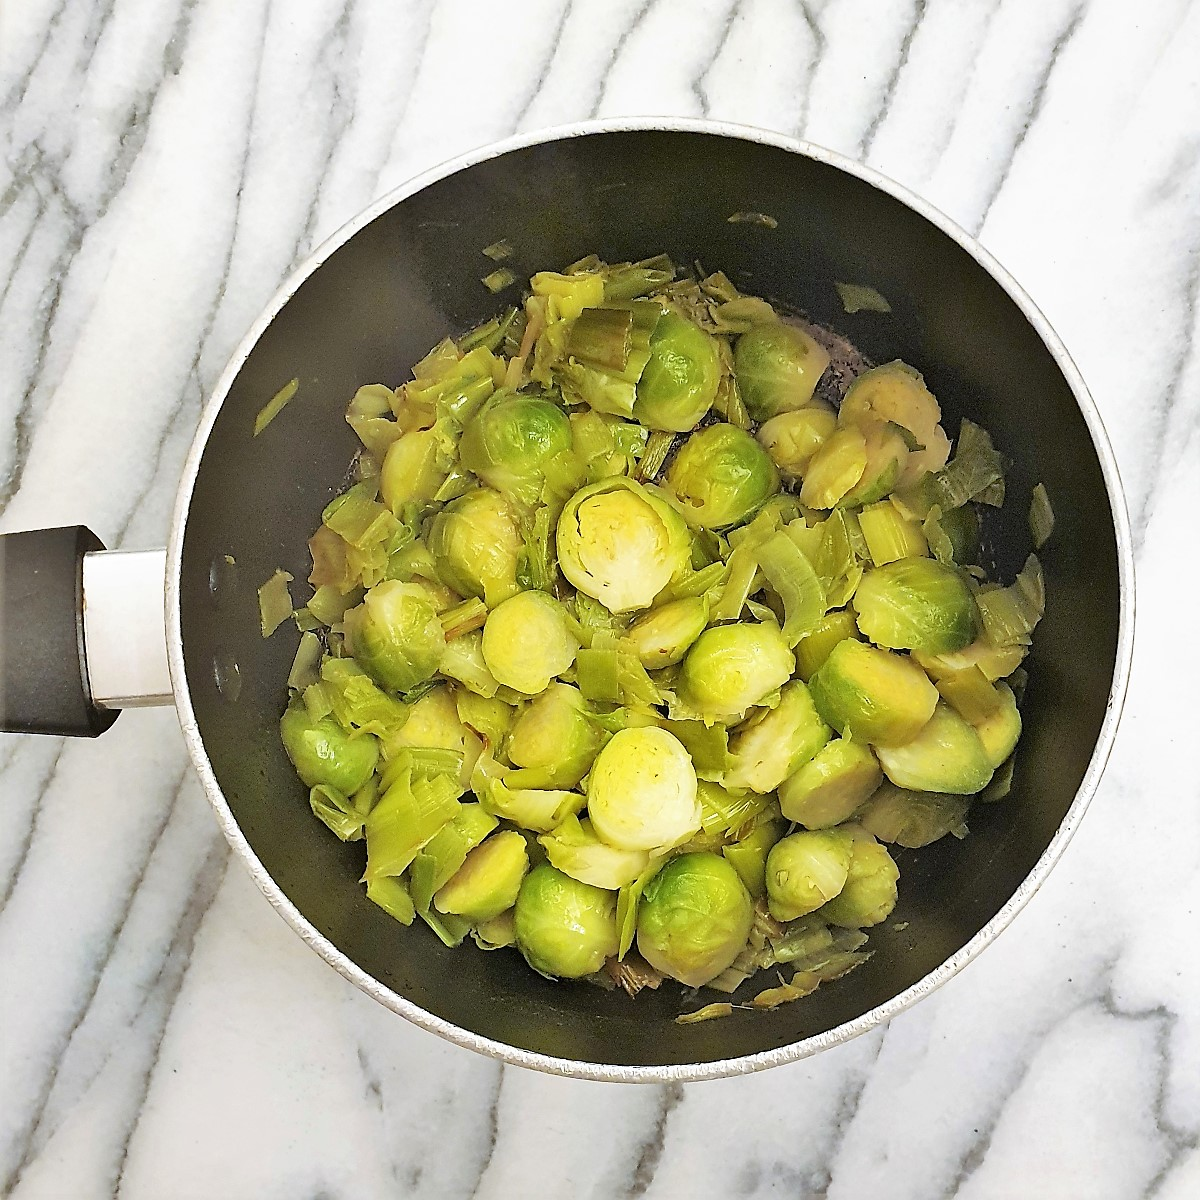 Add the brussels sprouts to the leeks.